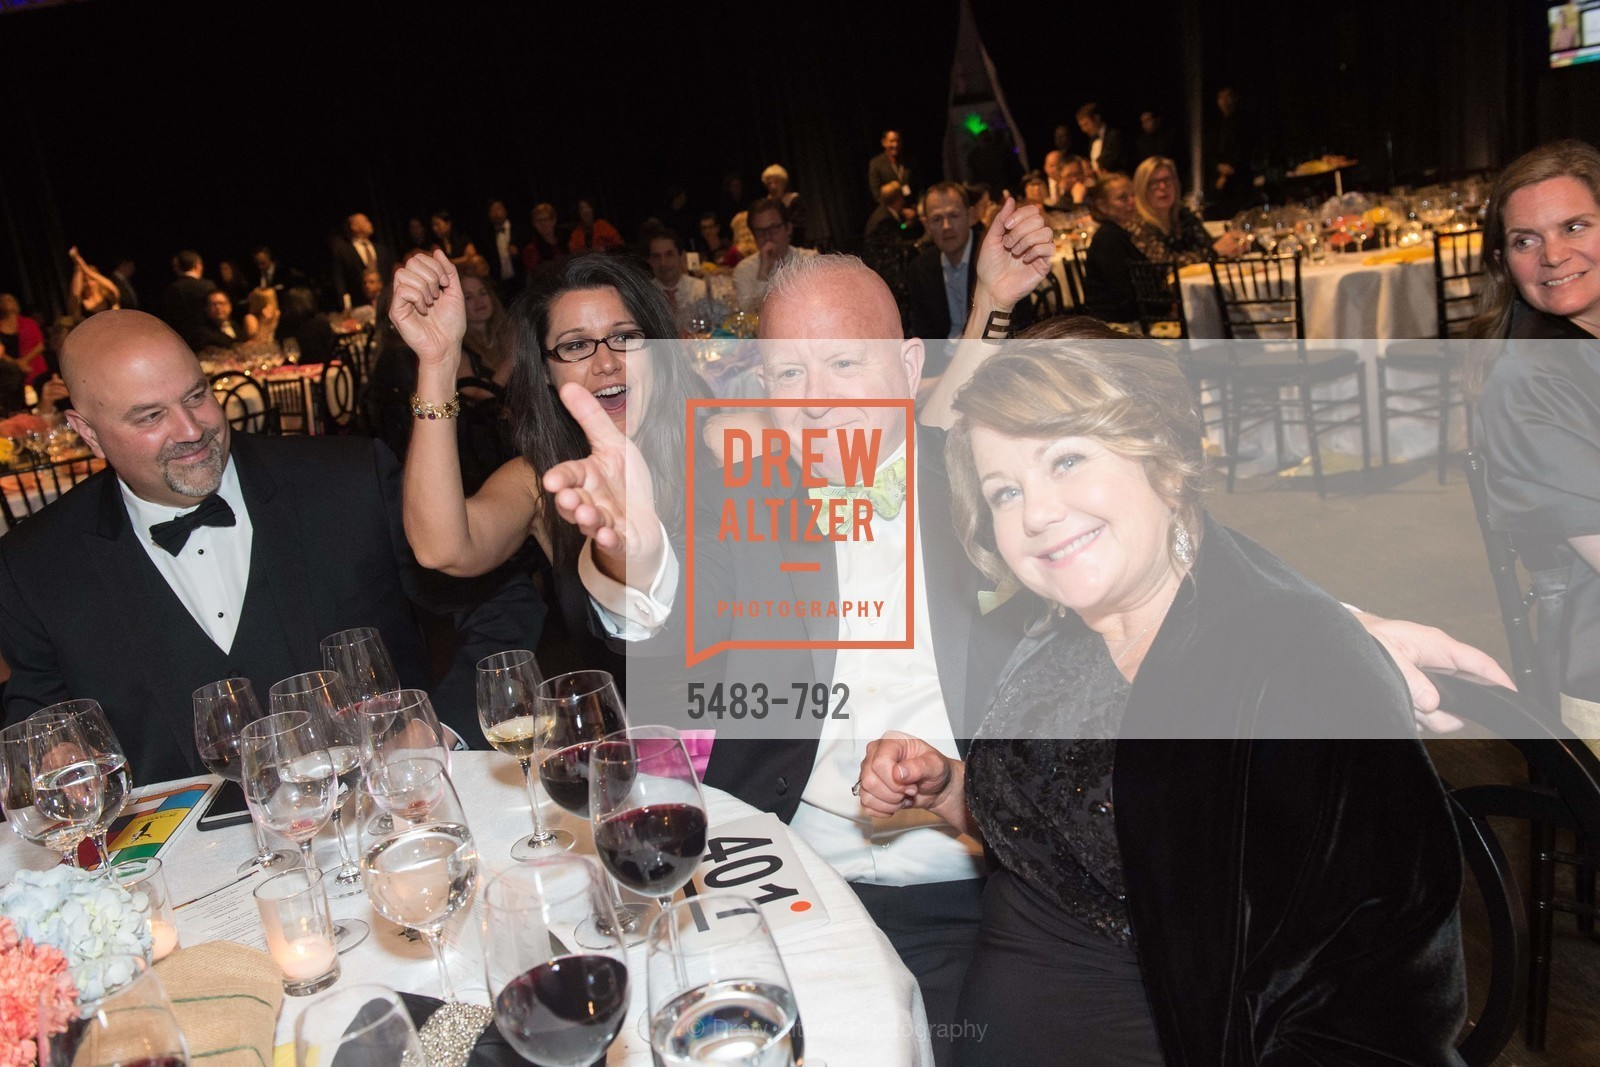 Shelly Zaldastani, MEALS ON WHEELS OF SAN FRANCISCO'S 28th Annual Star Chefs and Vintners Gala, US, April 20th, 2015,Drew Altizer, Drew Altizer Photography, full-service agency, private events, San Francisco photographer, photographer california